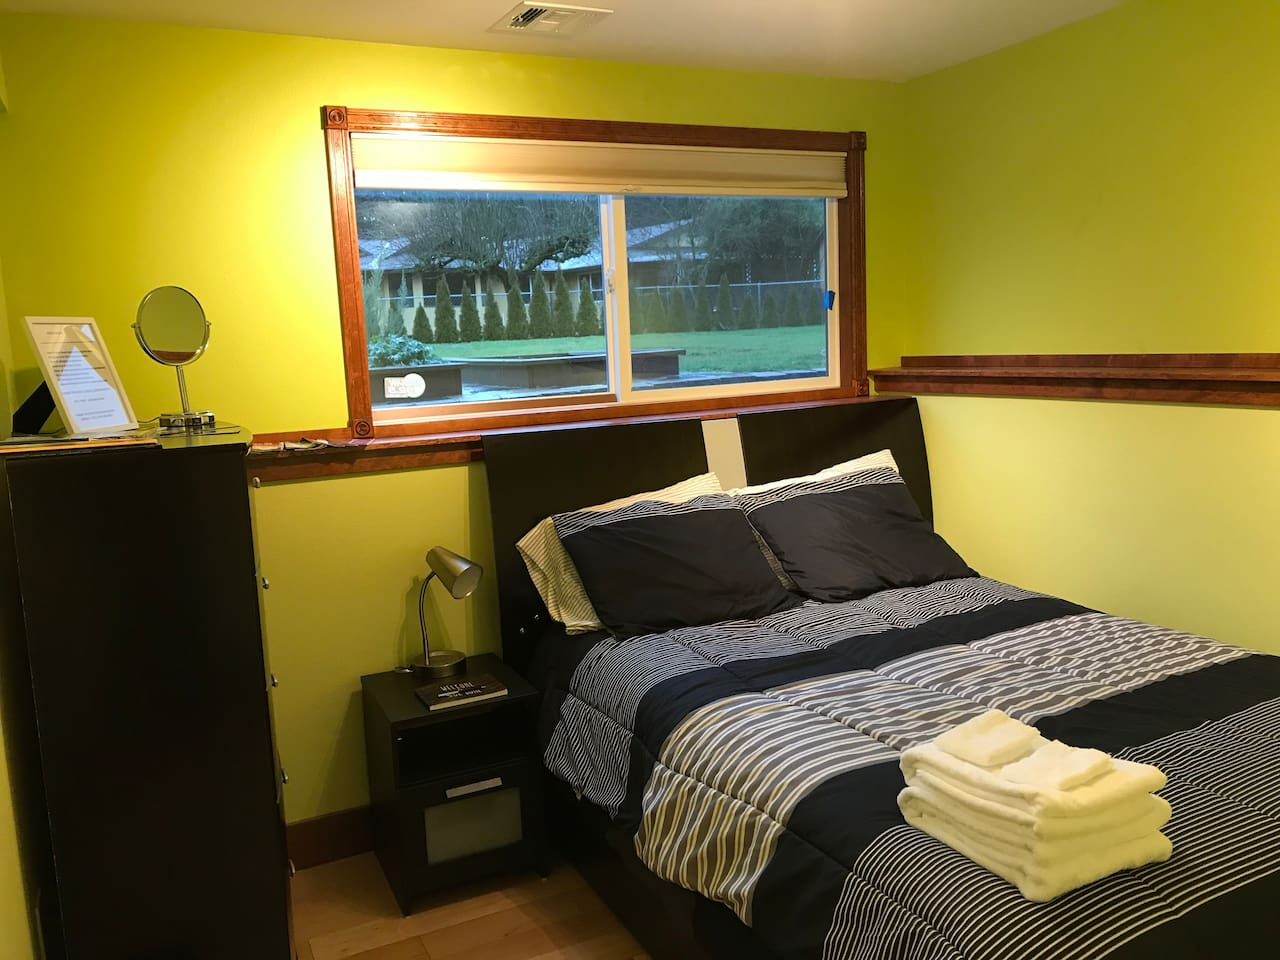 The green room gives off a refreshing feel with a window overlooking the backyard garden. The room includes dresser, closet with hangers, mirror, bedside lamp, space heater, and Washington State attraction pamphlets.